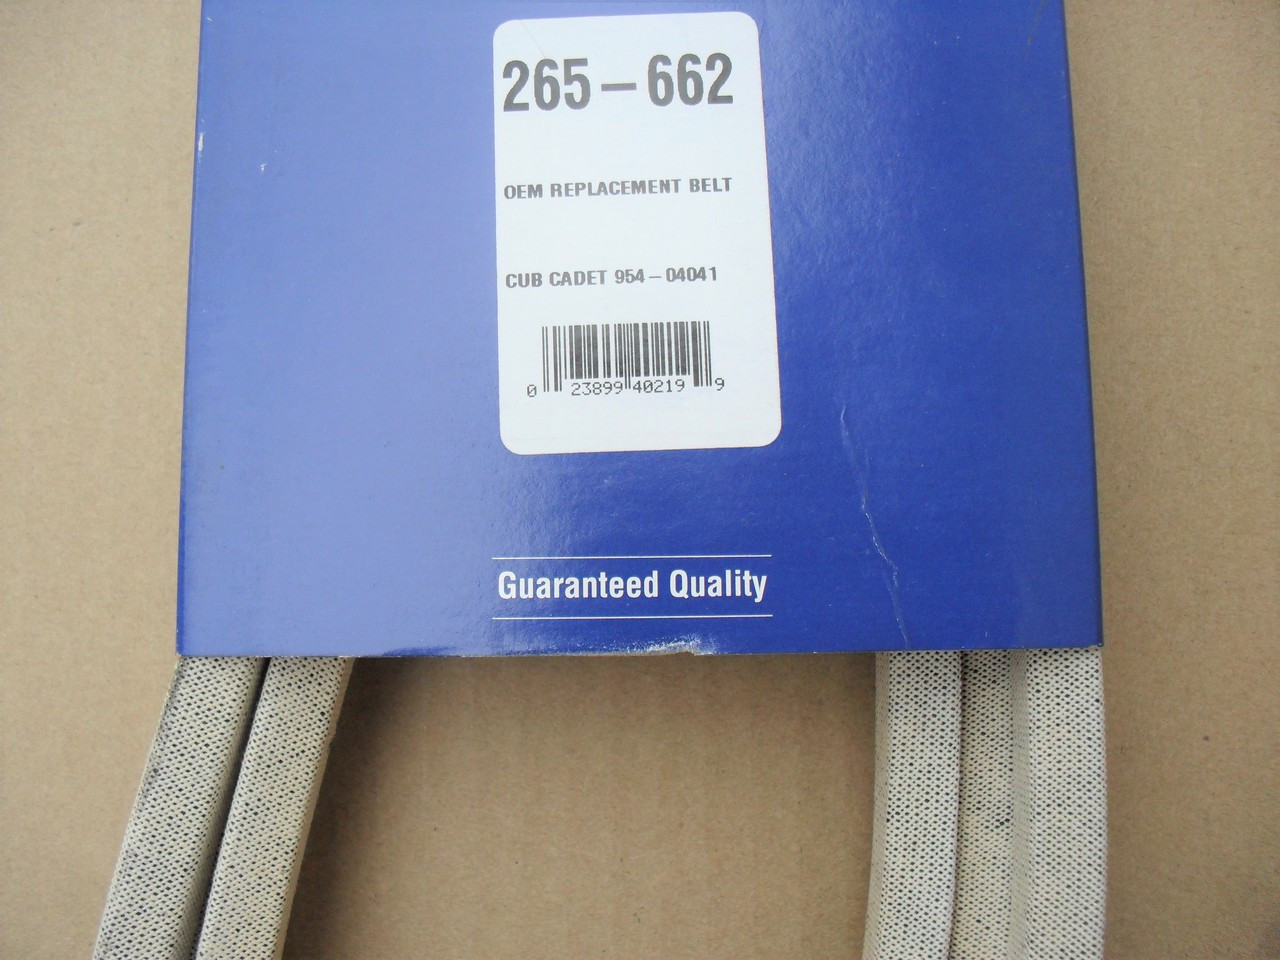 Deck Drive Belt for Cub Cadet GT2542, GT2544, 754-04041, 954-04041, Made In  USA